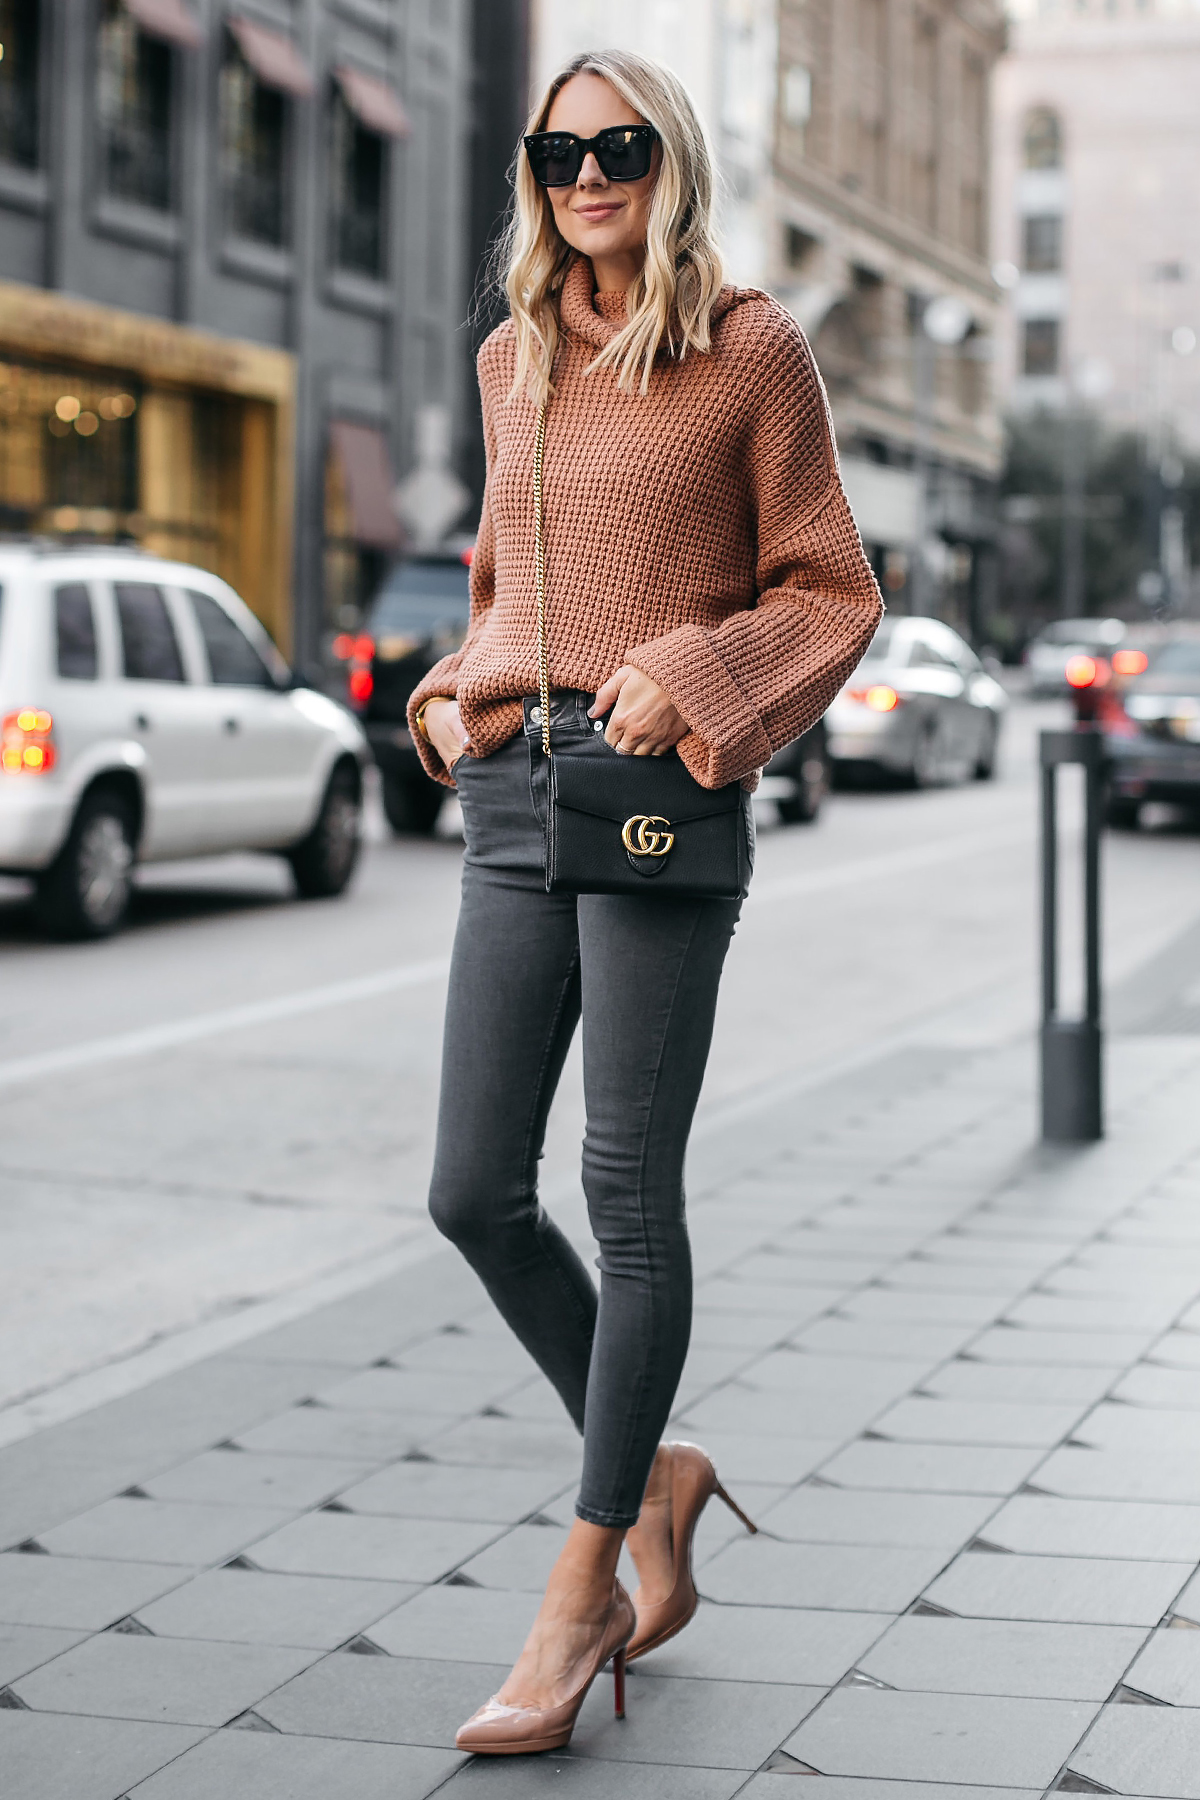 Fashion Jackson Oversized Sweater Free People Park City Pullover Tan Sweater Grey Skinny Jeans Christian Louboutin Nude Pumps Gucci Marmont Handbag 1